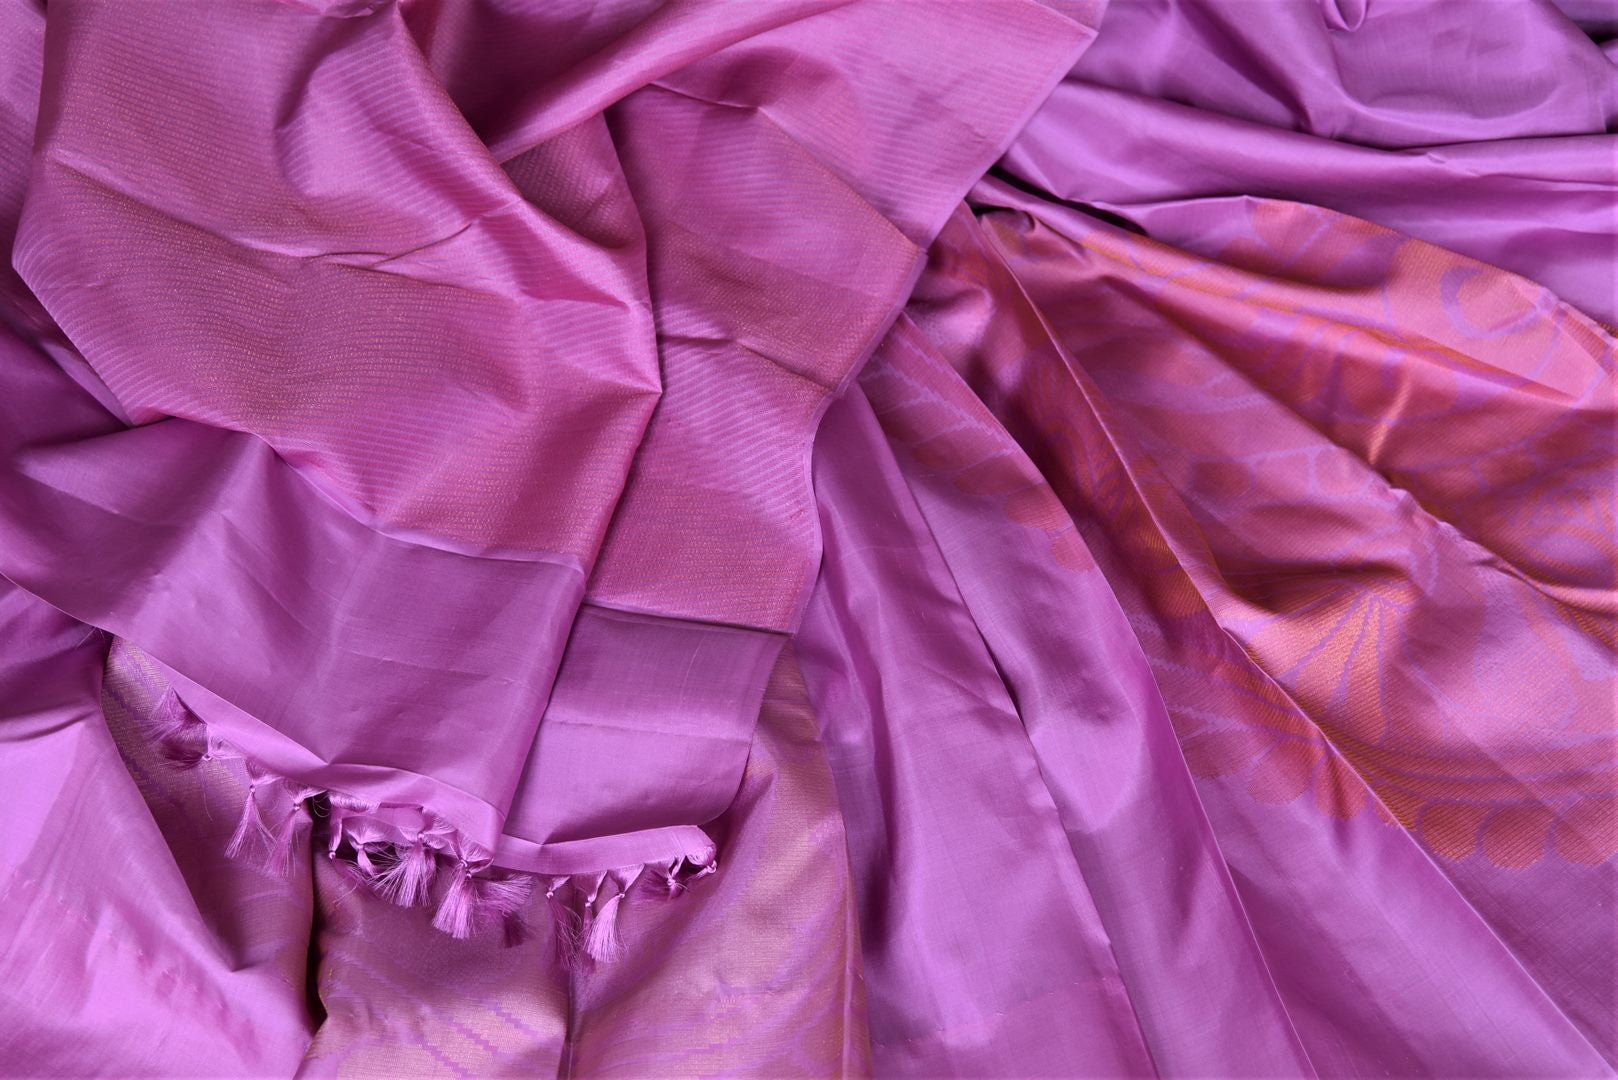 Shop stunning violet Kanchipuram sari online in USA with golden zari floral motifs. Add spark to your festive style with beautiful Kanchipuram silk saris in USA from Pure Elegance Indian fashion store.-details